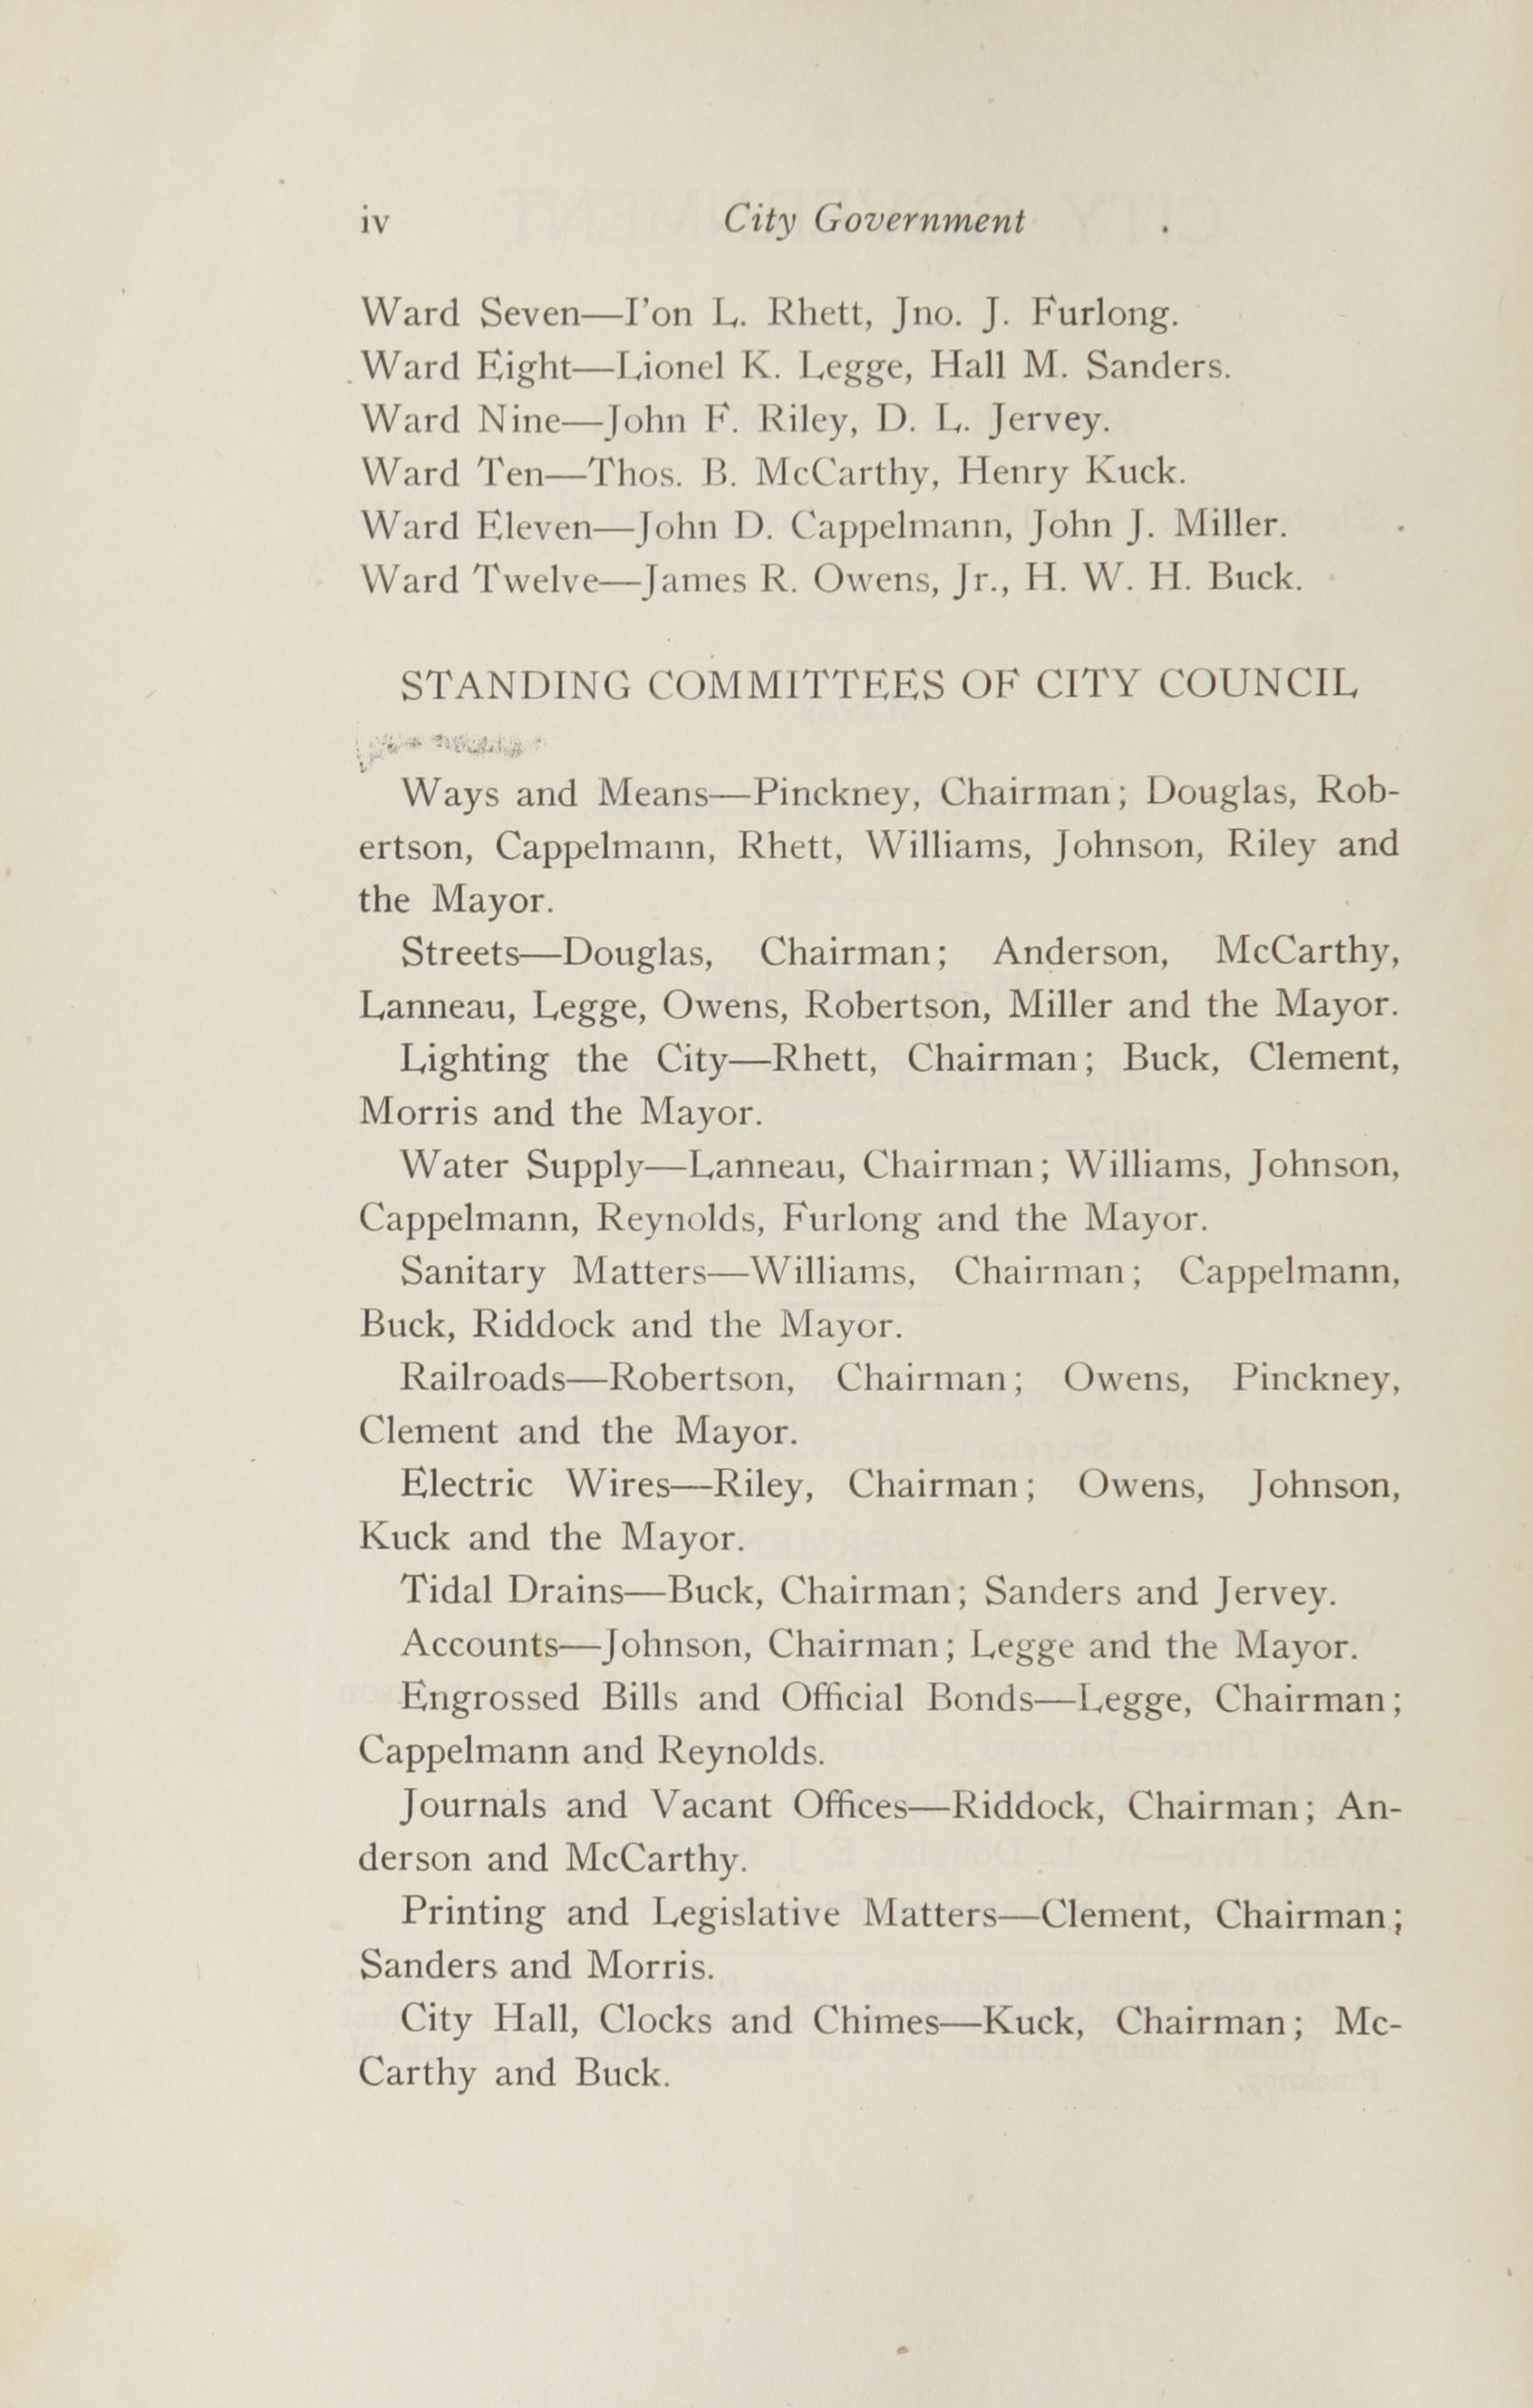 Charleston Yearbook, 1916, page iv